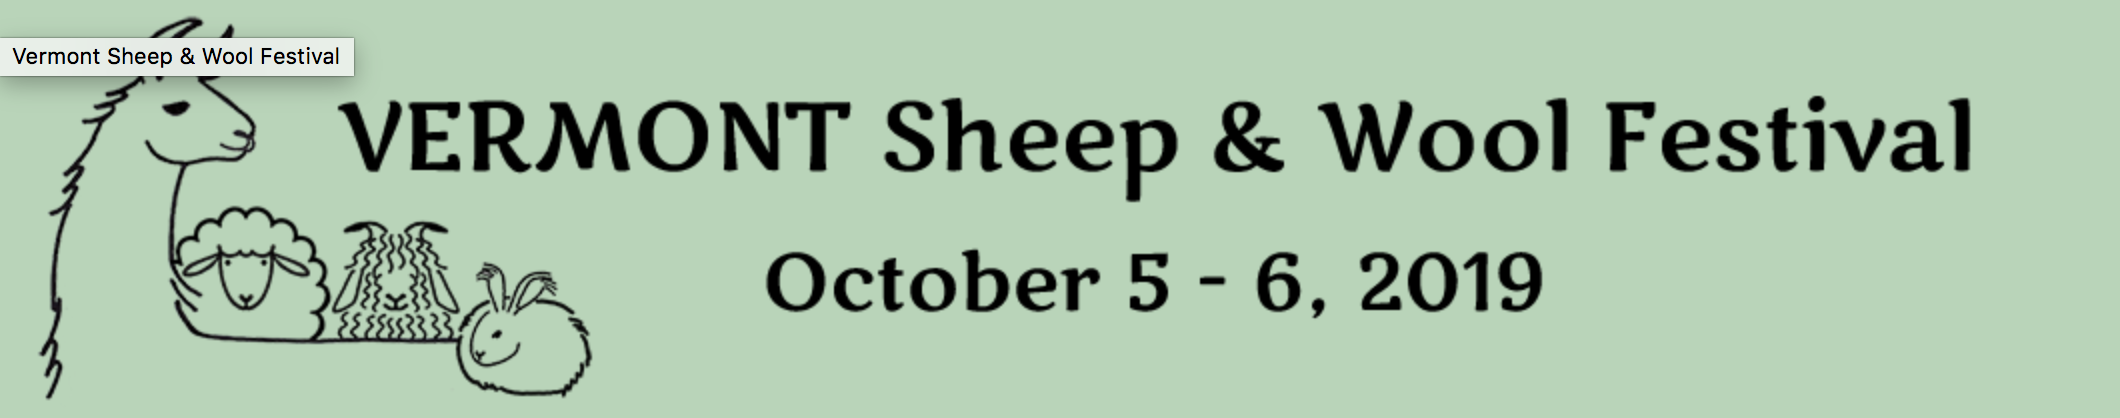 Vermont Sheep & Wool Festival 2019